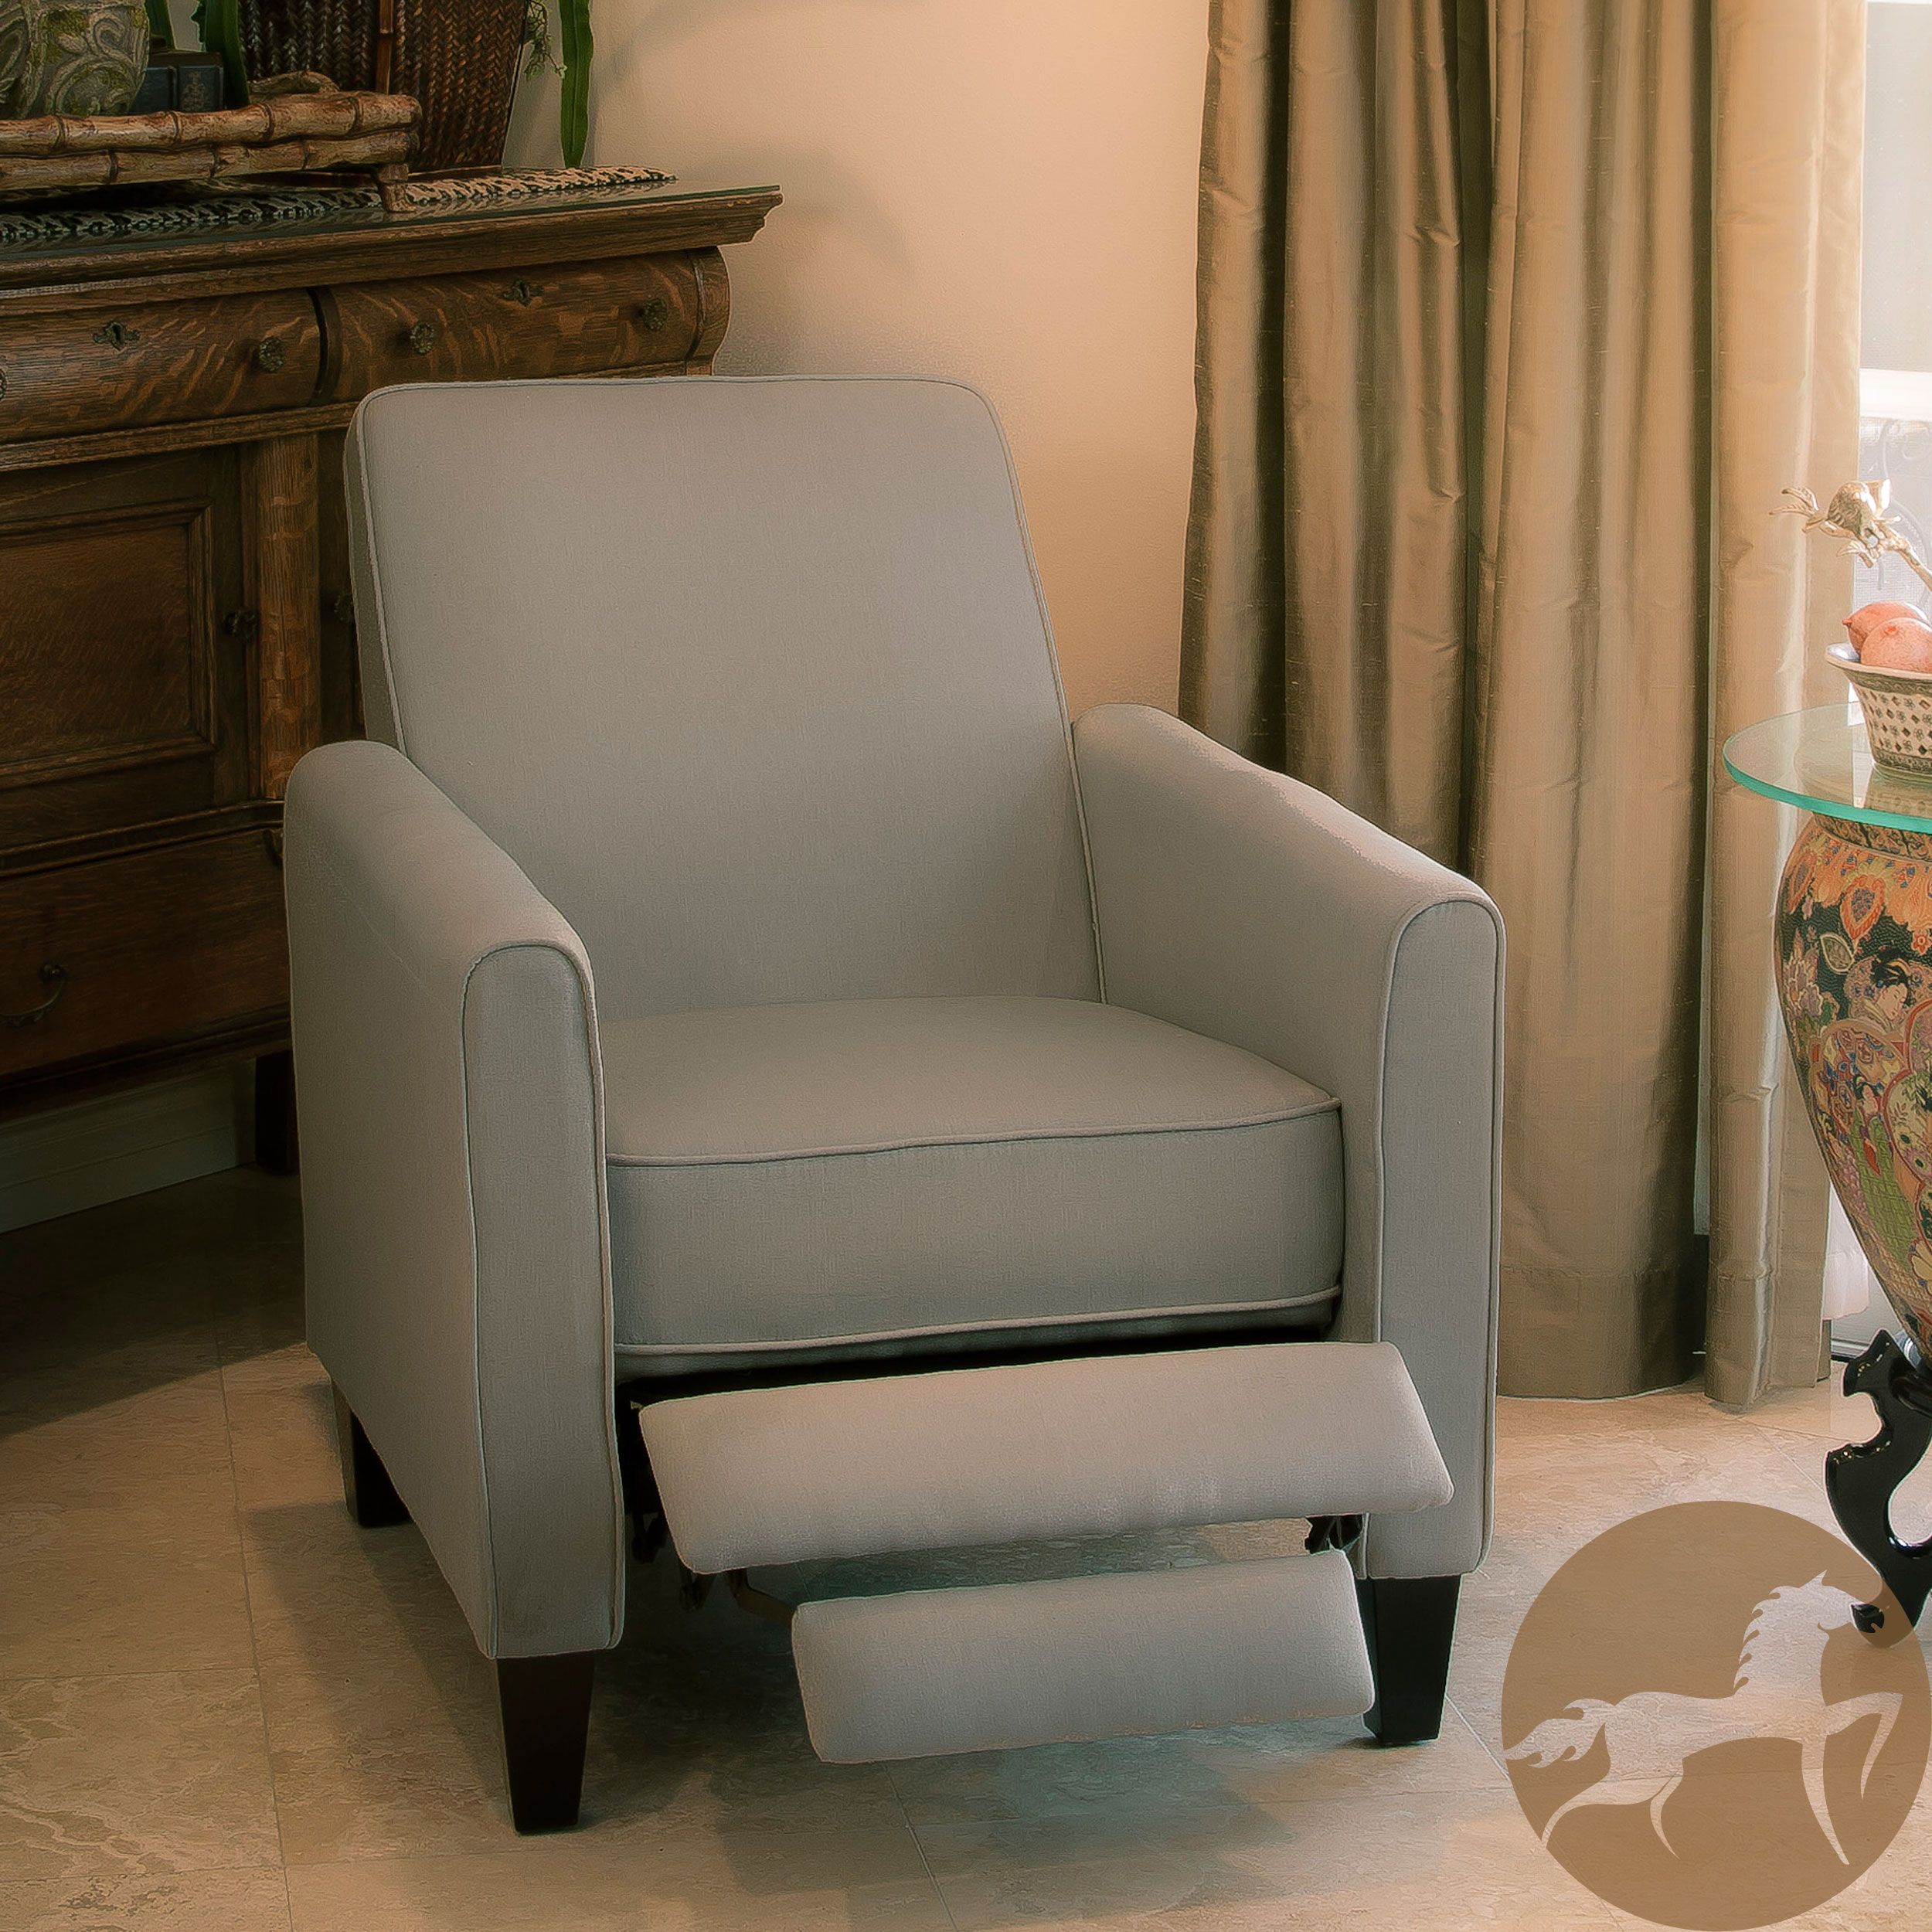 Relax In Style With This Recliner Club Chair Featuring A Solid Frame And  Sturdy Feet For Added Stability And Strength. This Comfortable Reclining  Chair Is ...